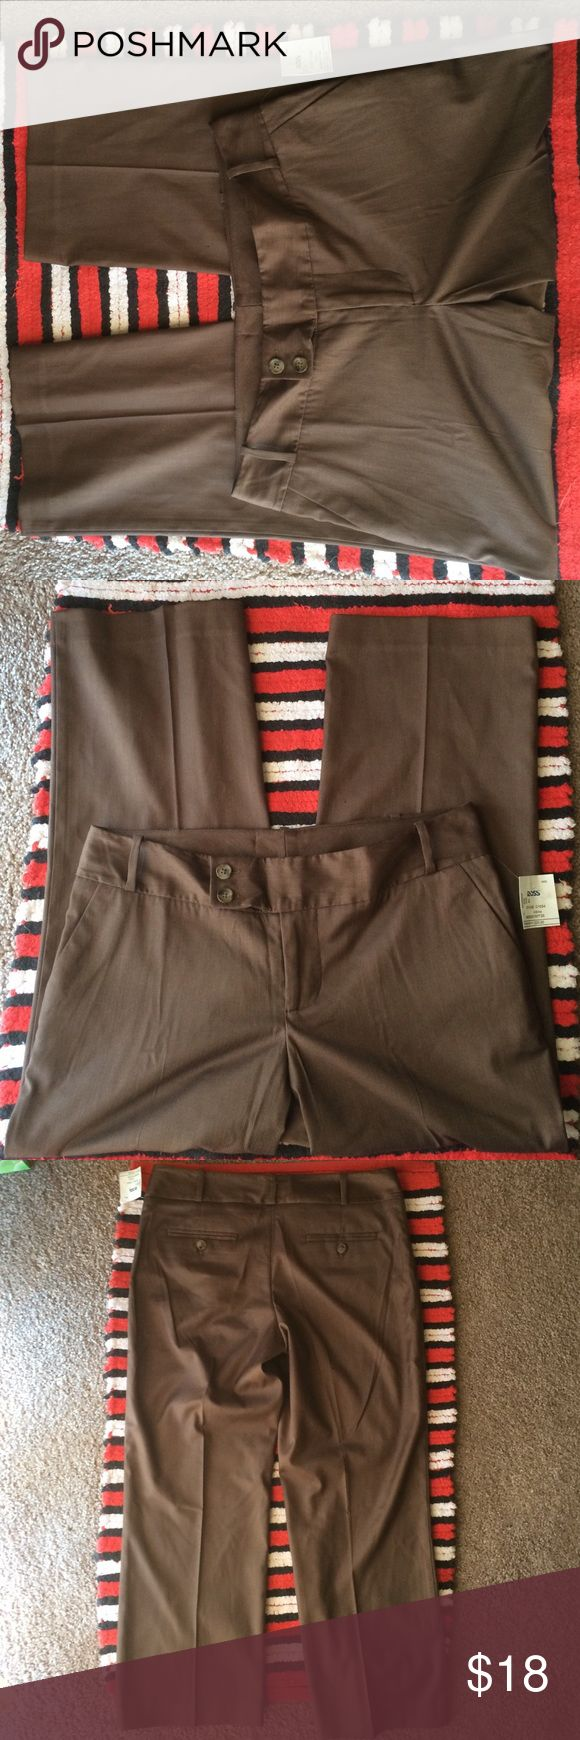 First Opinion Ladies Dress Pants Sz. 4 Polyester/Rayon/Spandex, Brown w/gray pin striped pants-brand new-tags still attached. First Opinion Pants Trousers